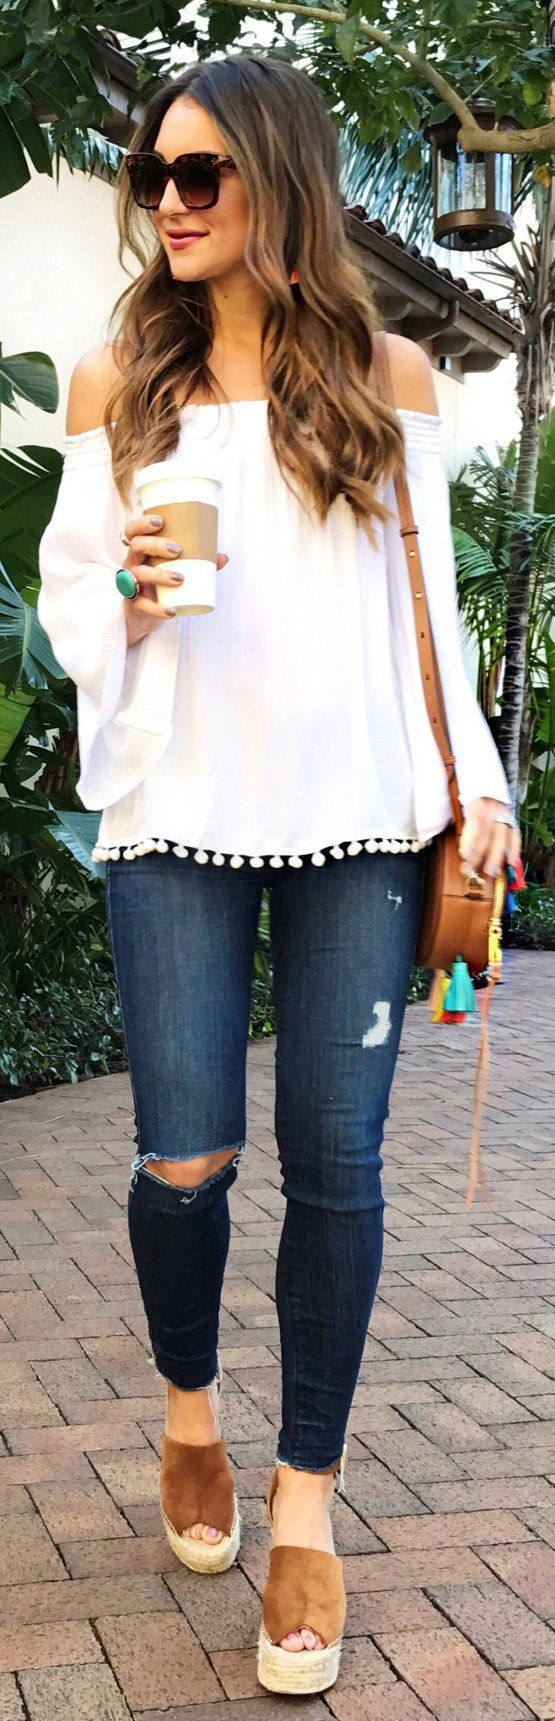 5d0230d360004 25 Flirty Outfits To Wear This Spring 2019 - Outfit Ideas for Women ...